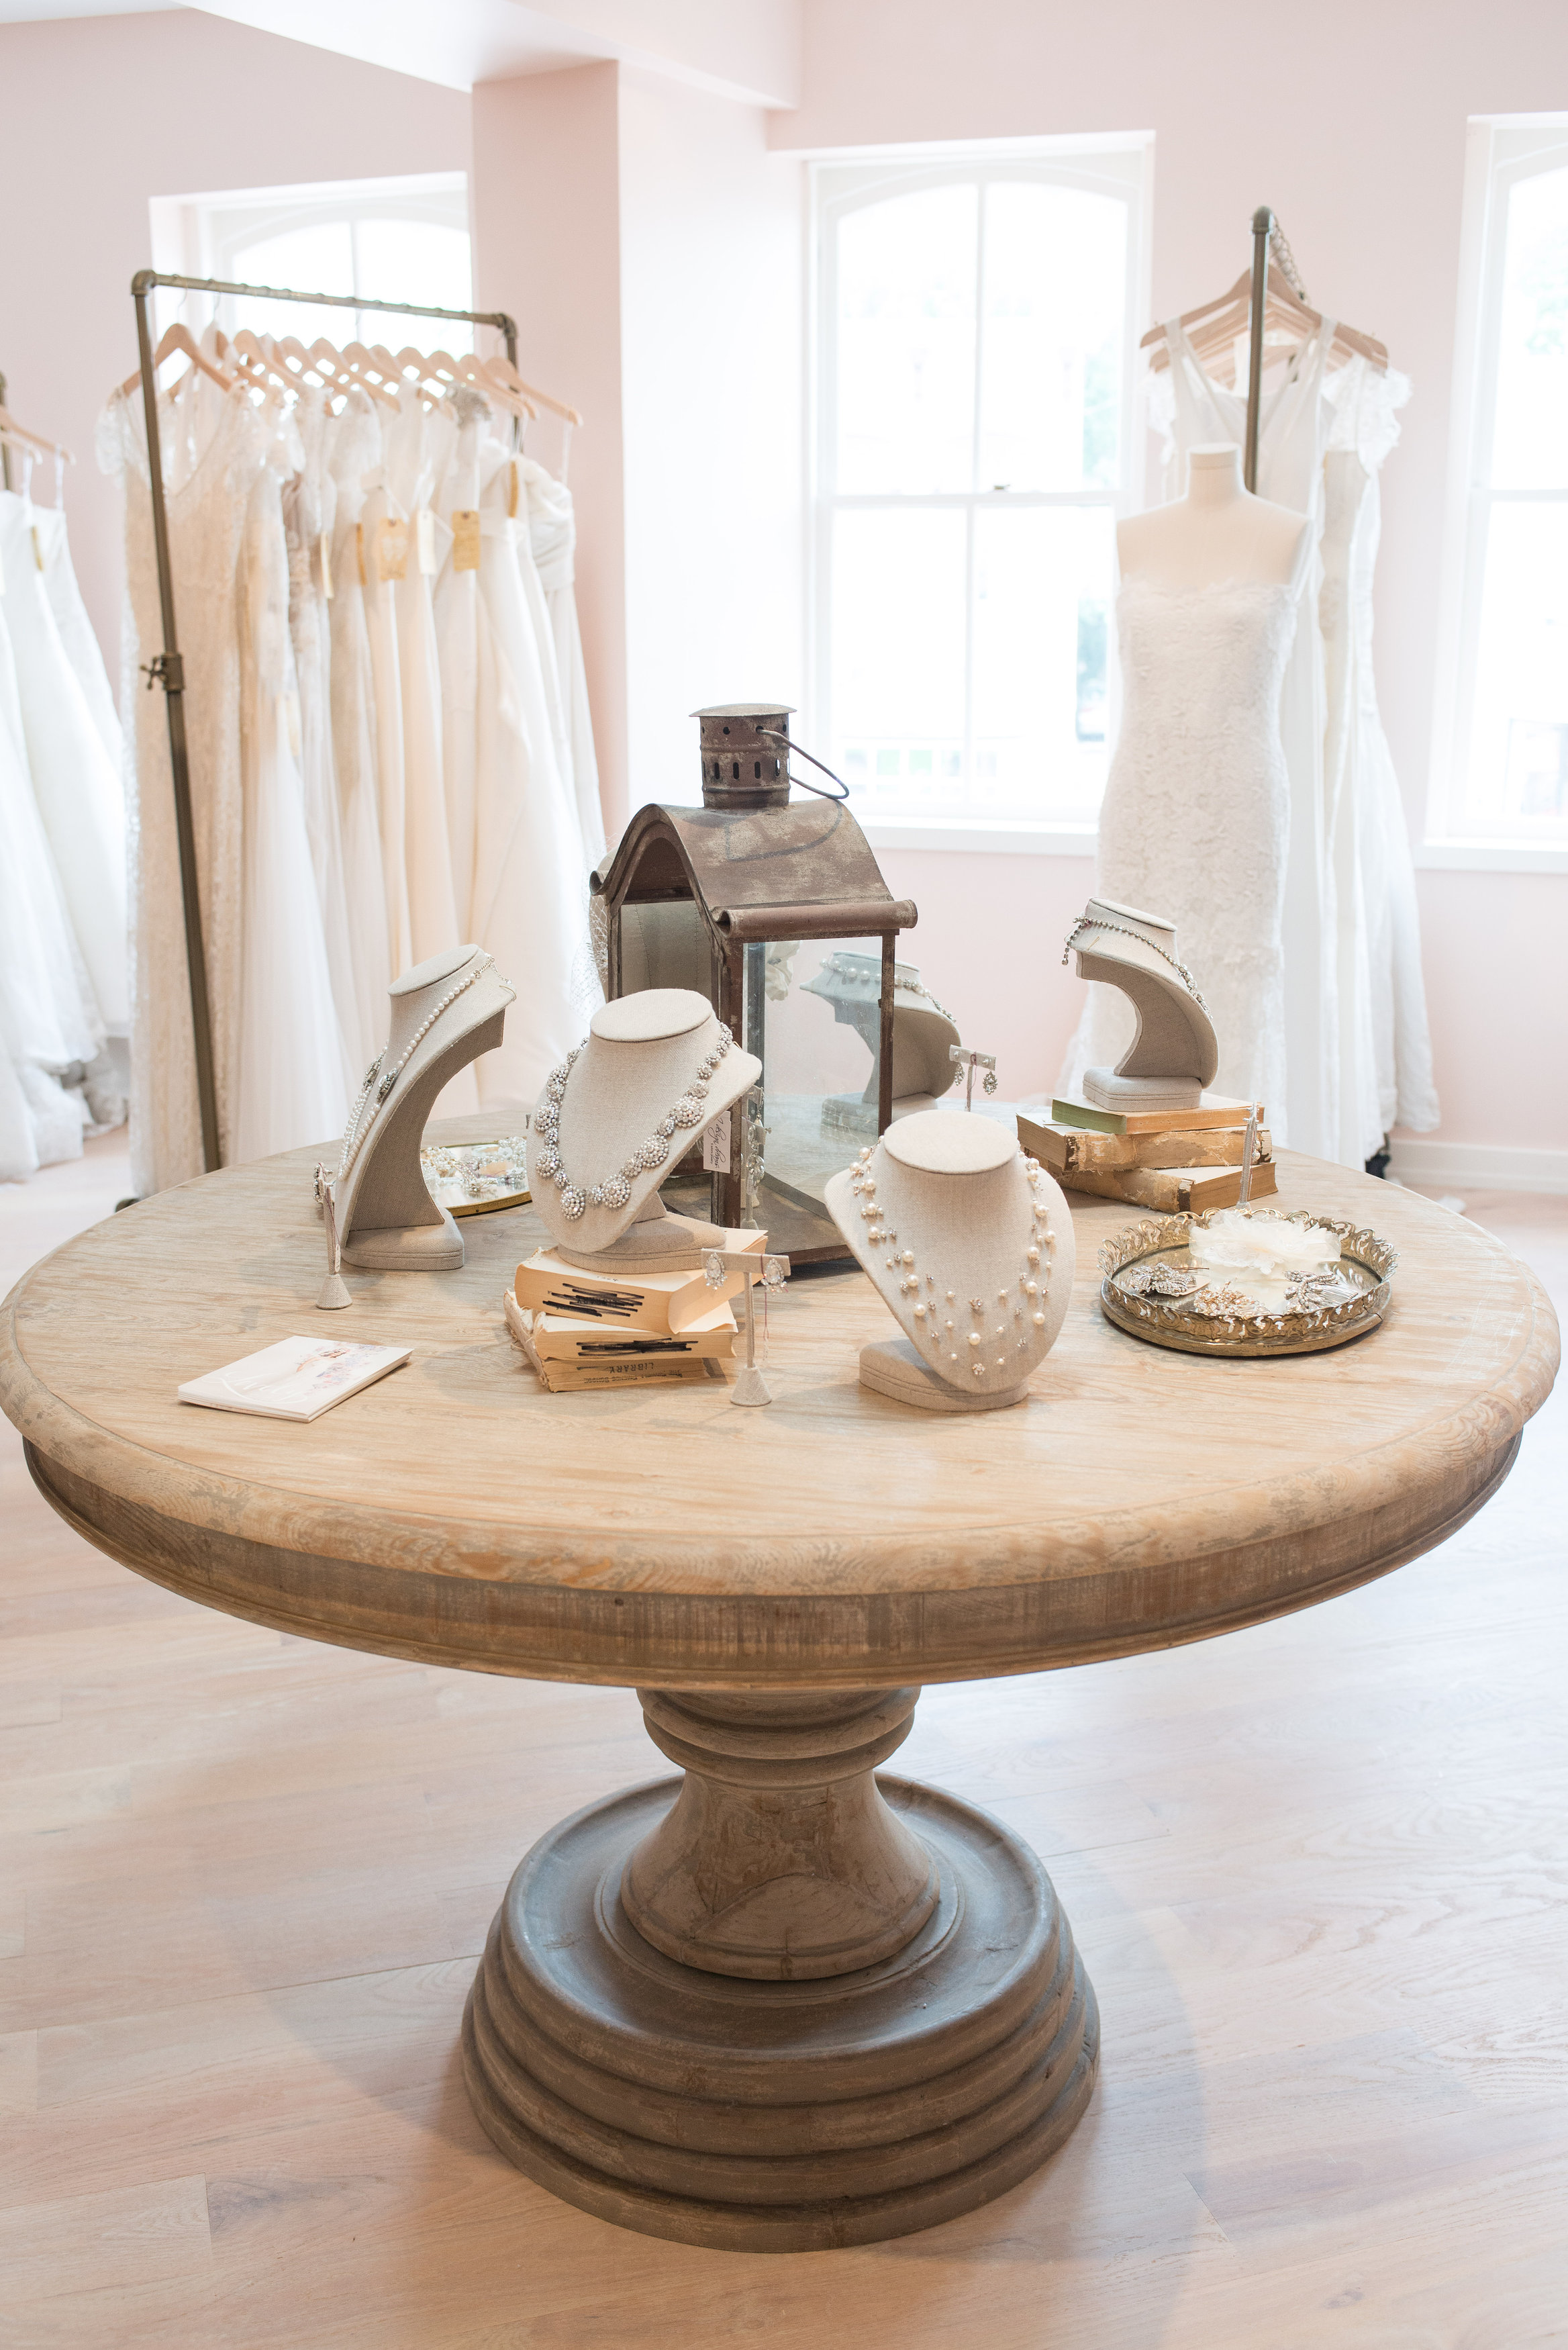 How To Finding The Perfect Wedding Dress United With Love